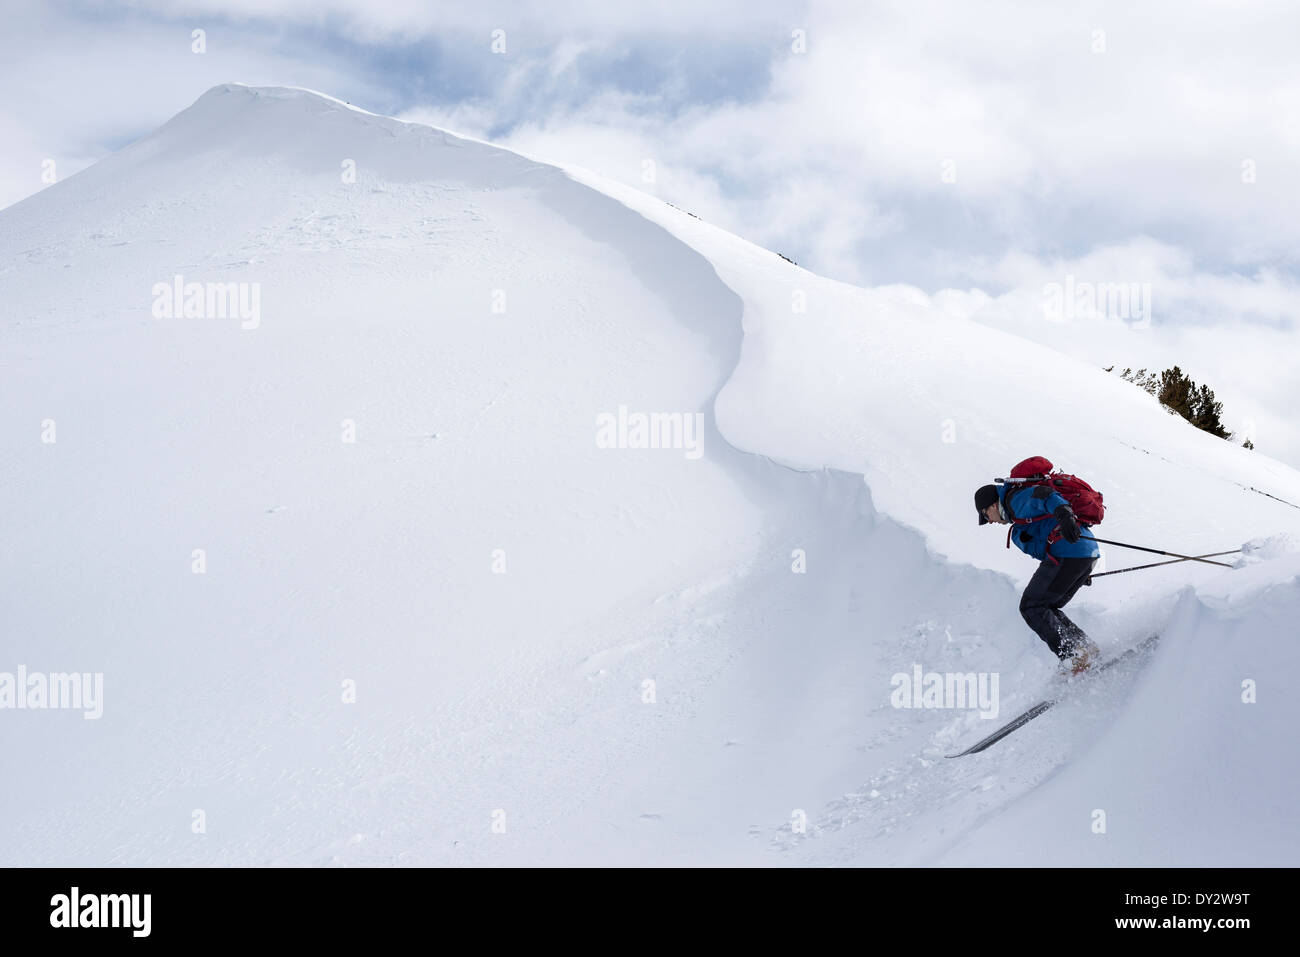 Skiing off a cornice high in Oregon's Wallowa Mountains. - Stock Image